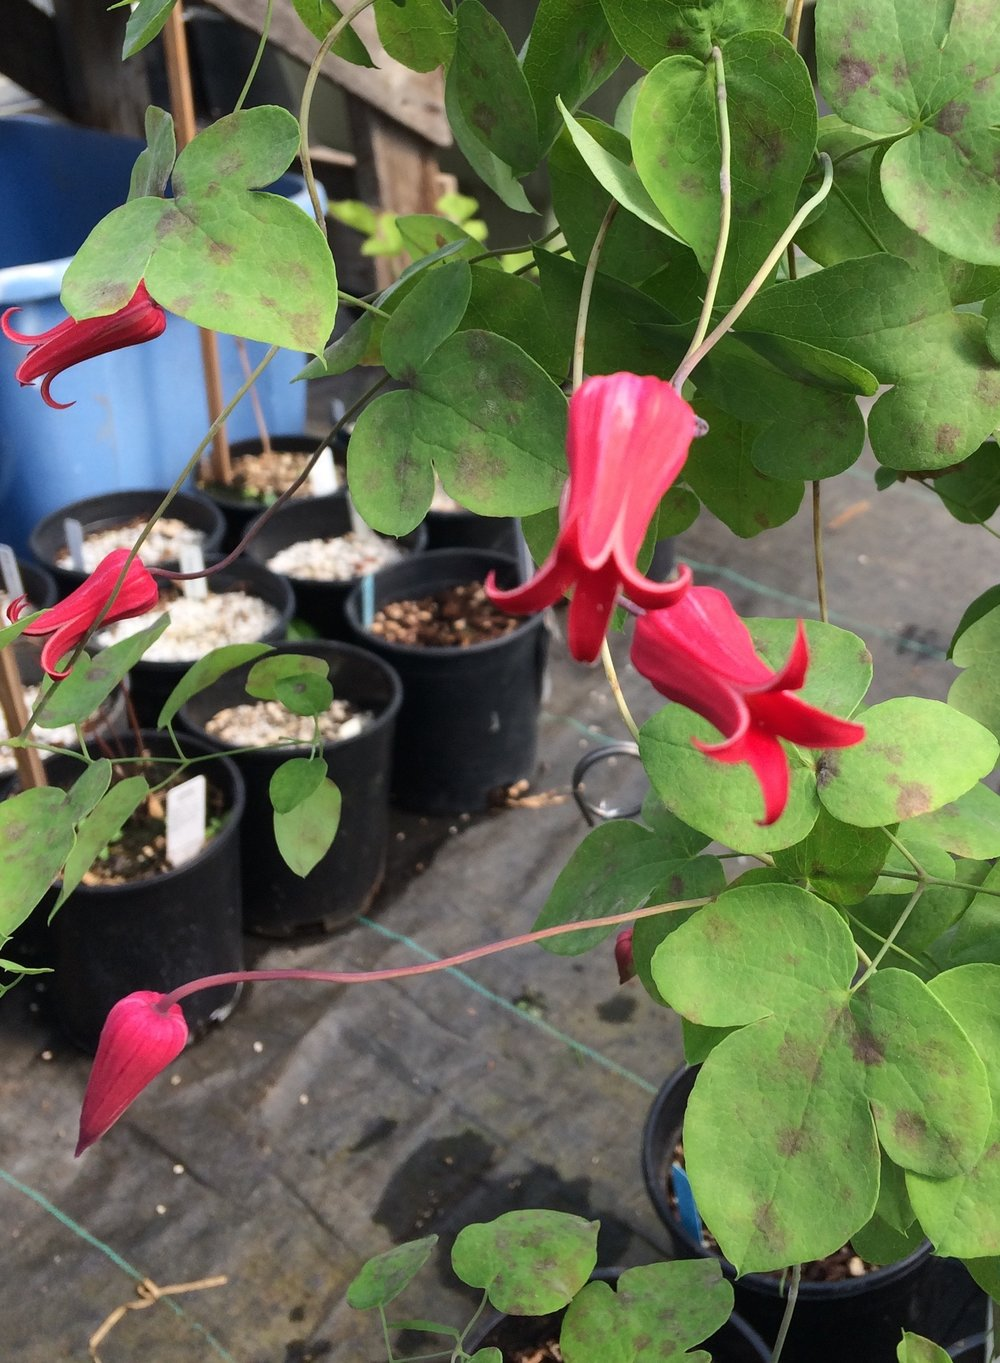 Clematis texensis , the red + red form, also known as the Tarpley River form. We believe the dark spots on the leaves are cellular damage from being watered on hot days. Maurice Horn at Joy Creek Nursery suggested this.